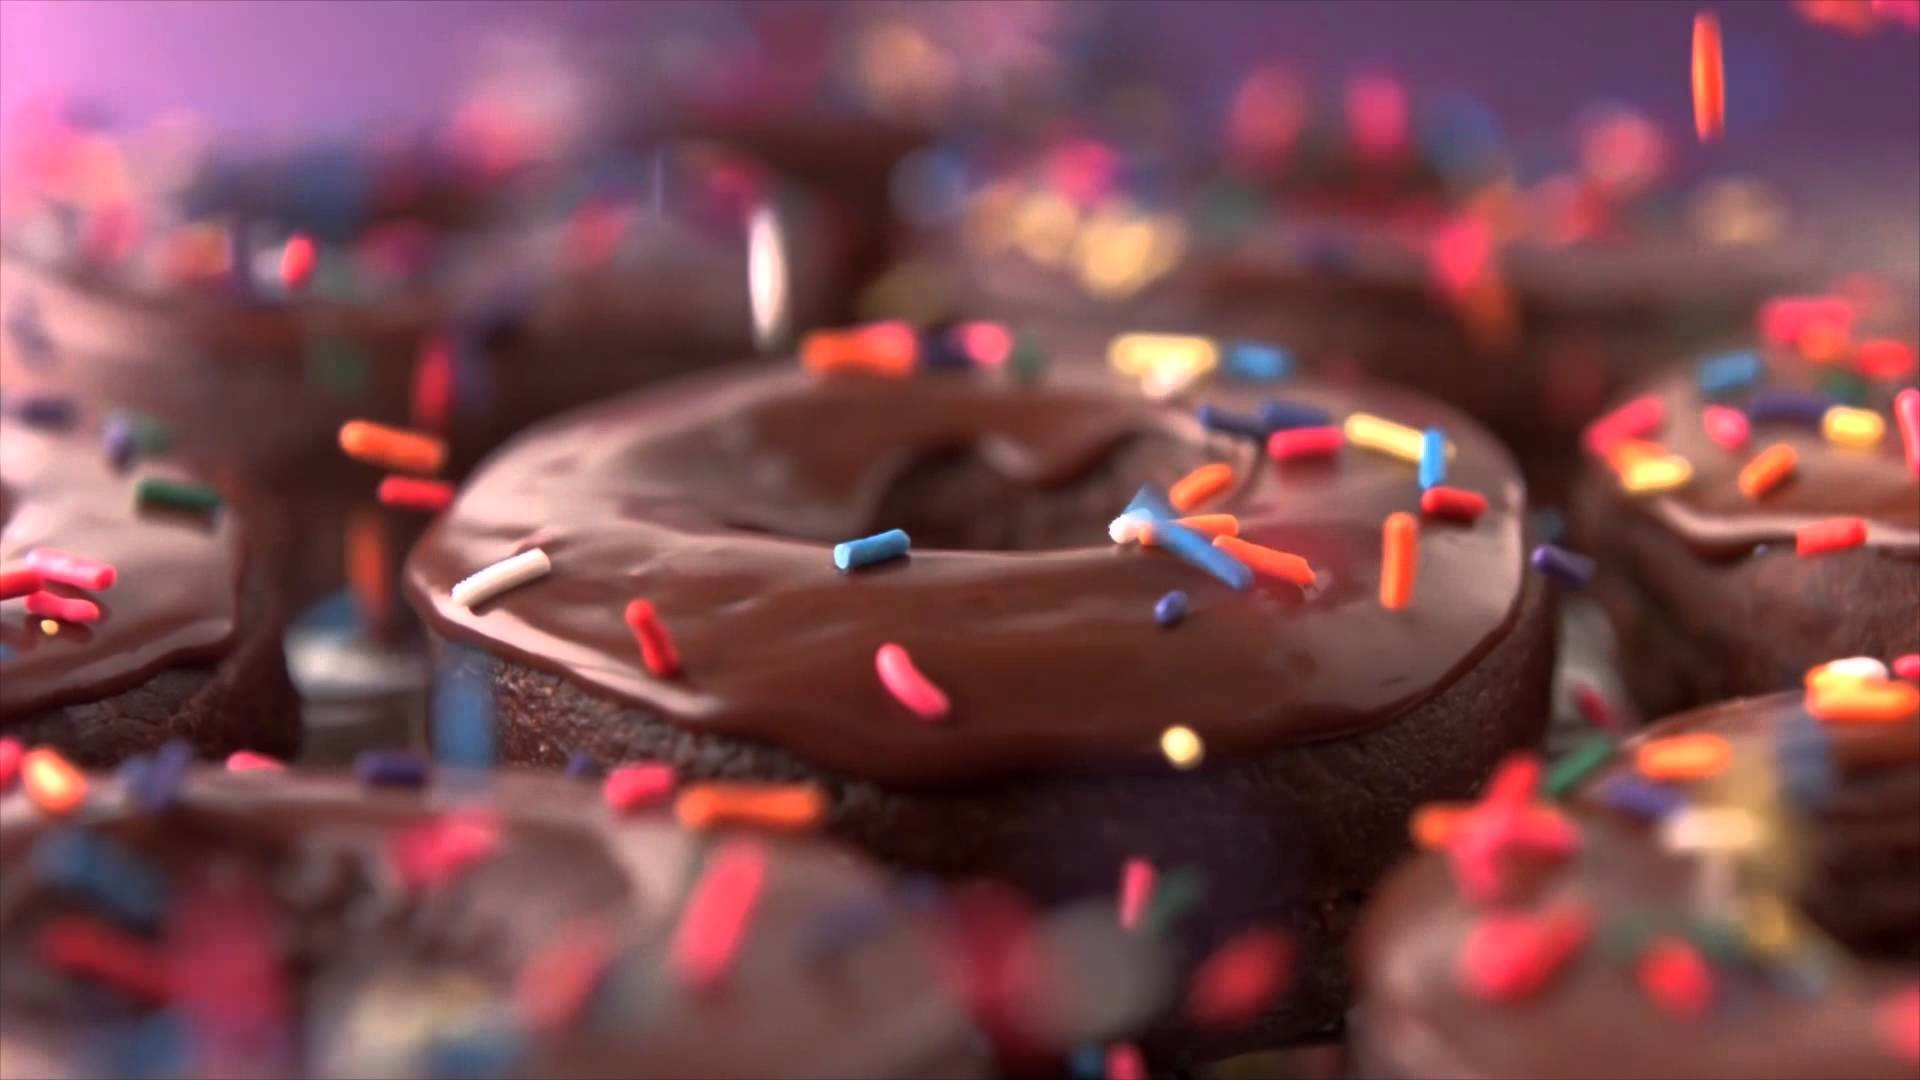 donut pictures 4k